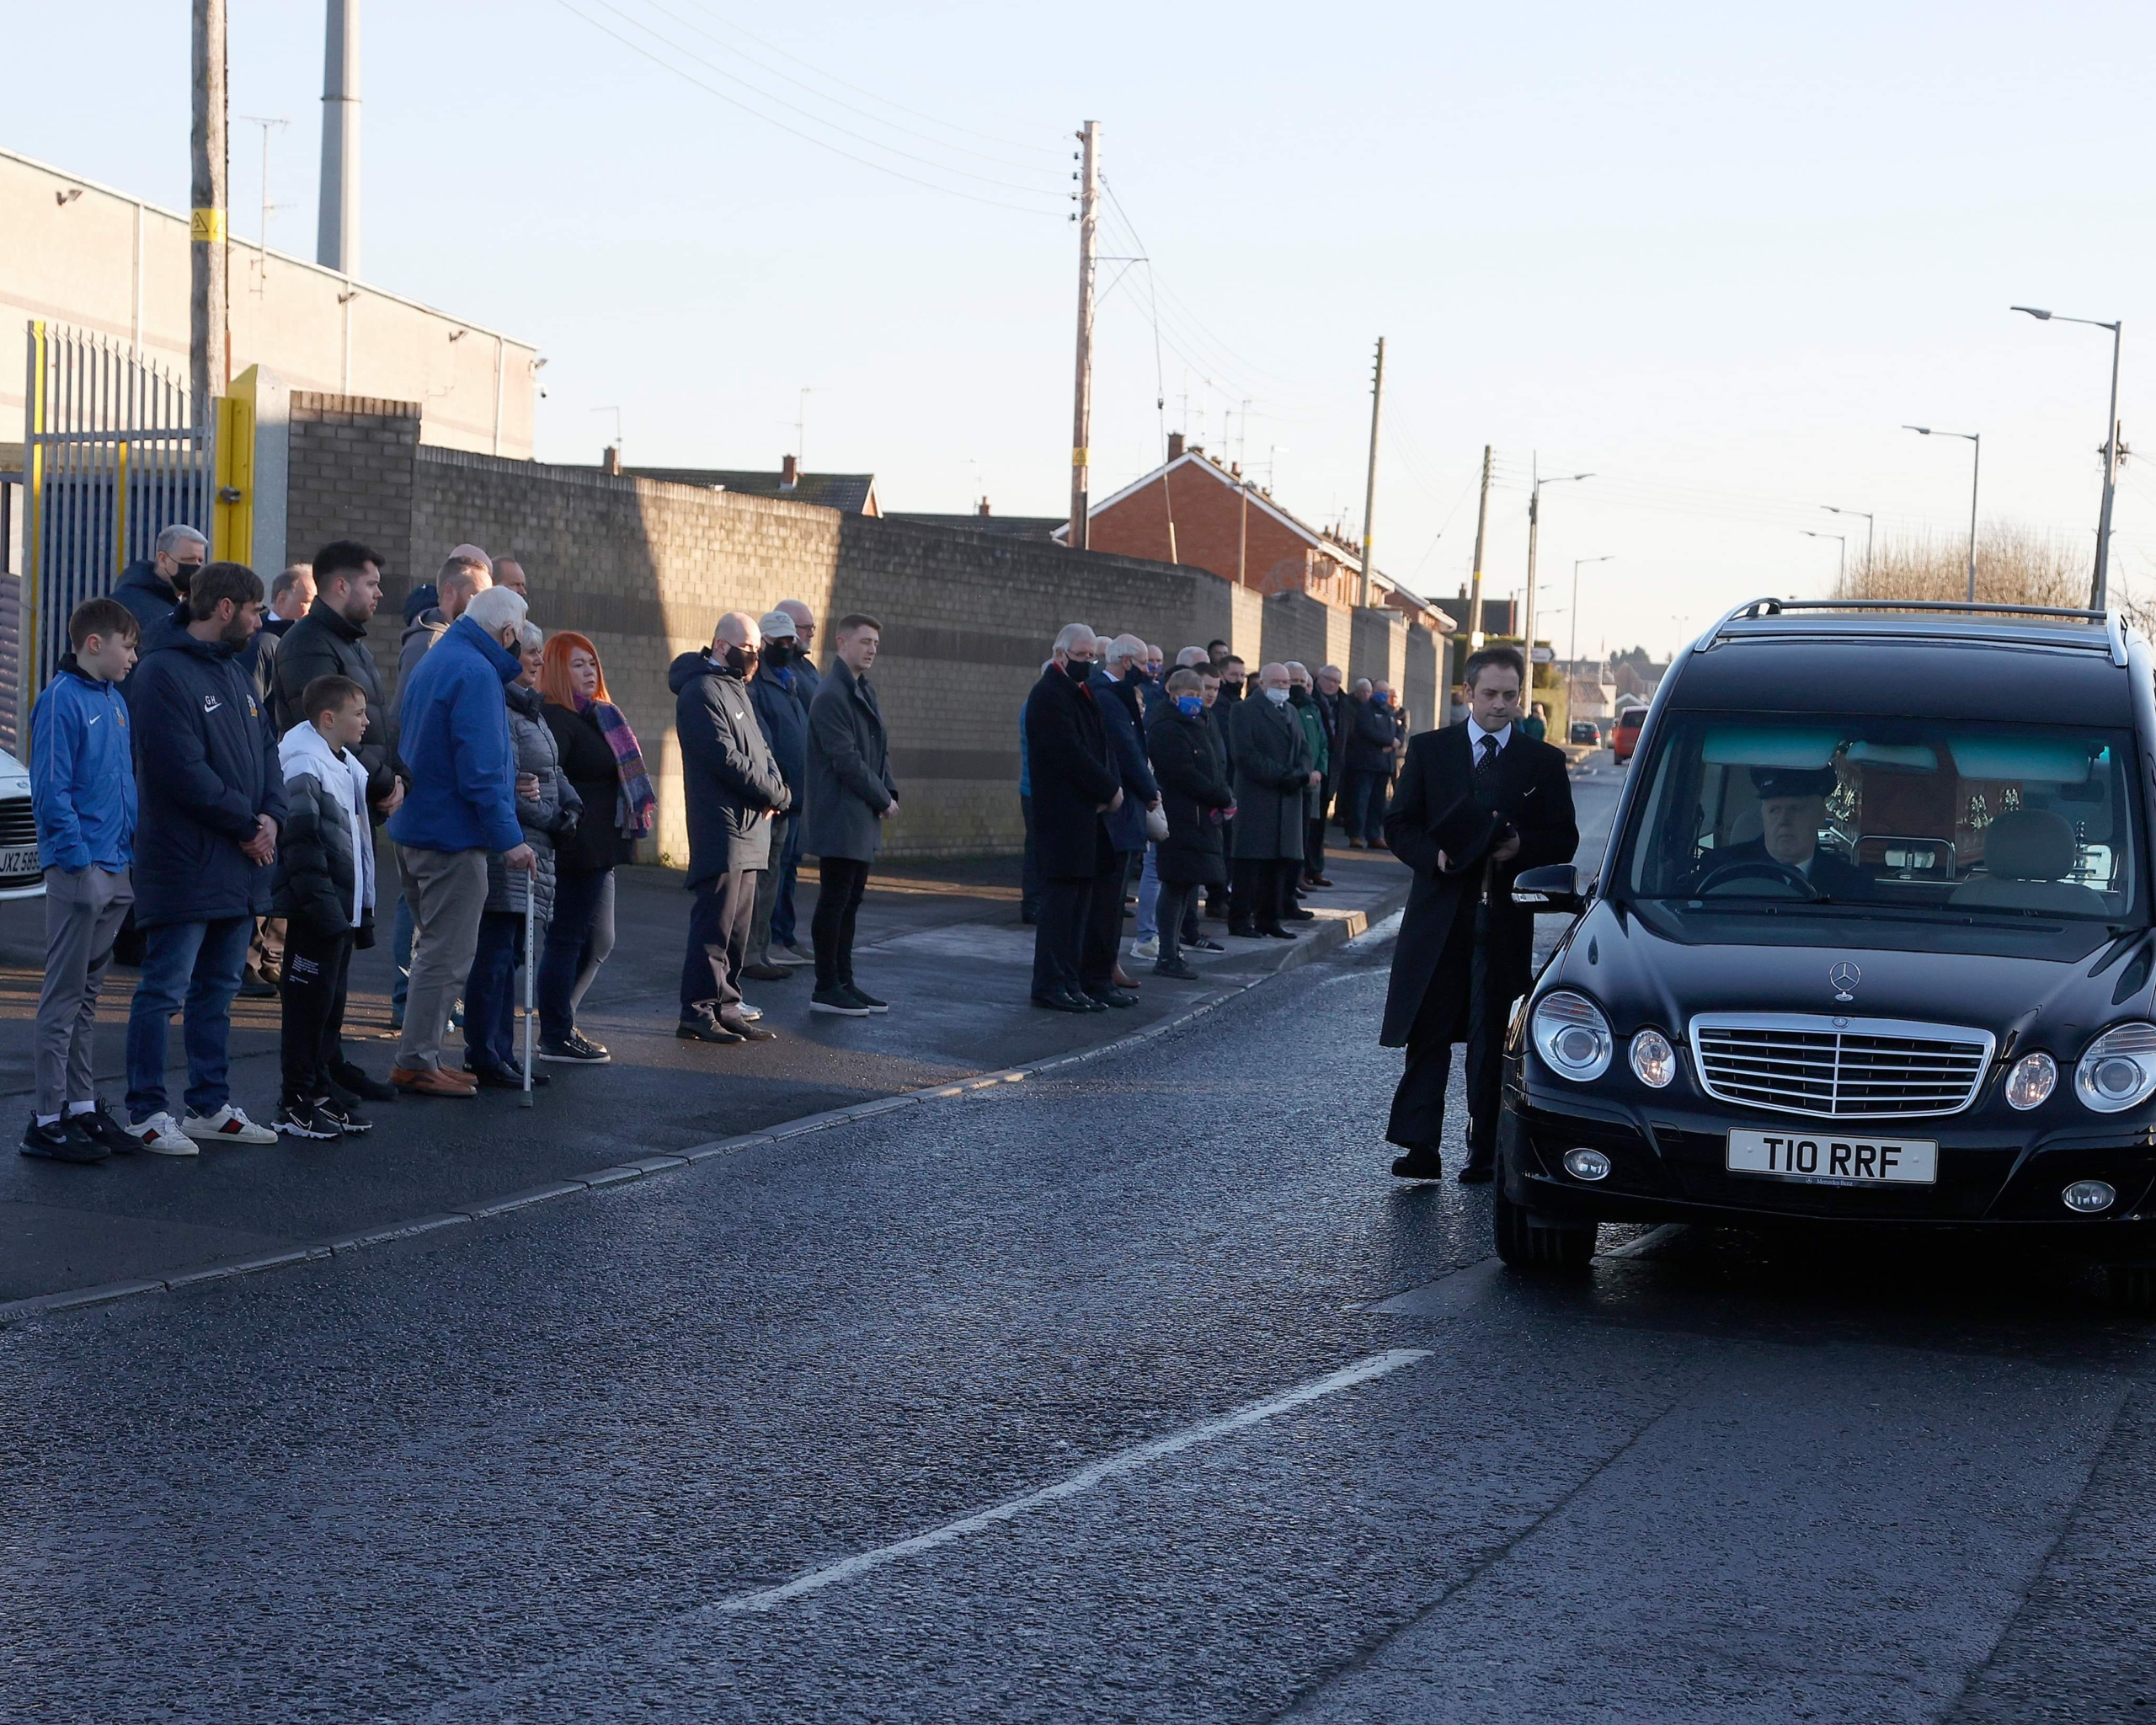 Sadness as Noel's funeral takes place